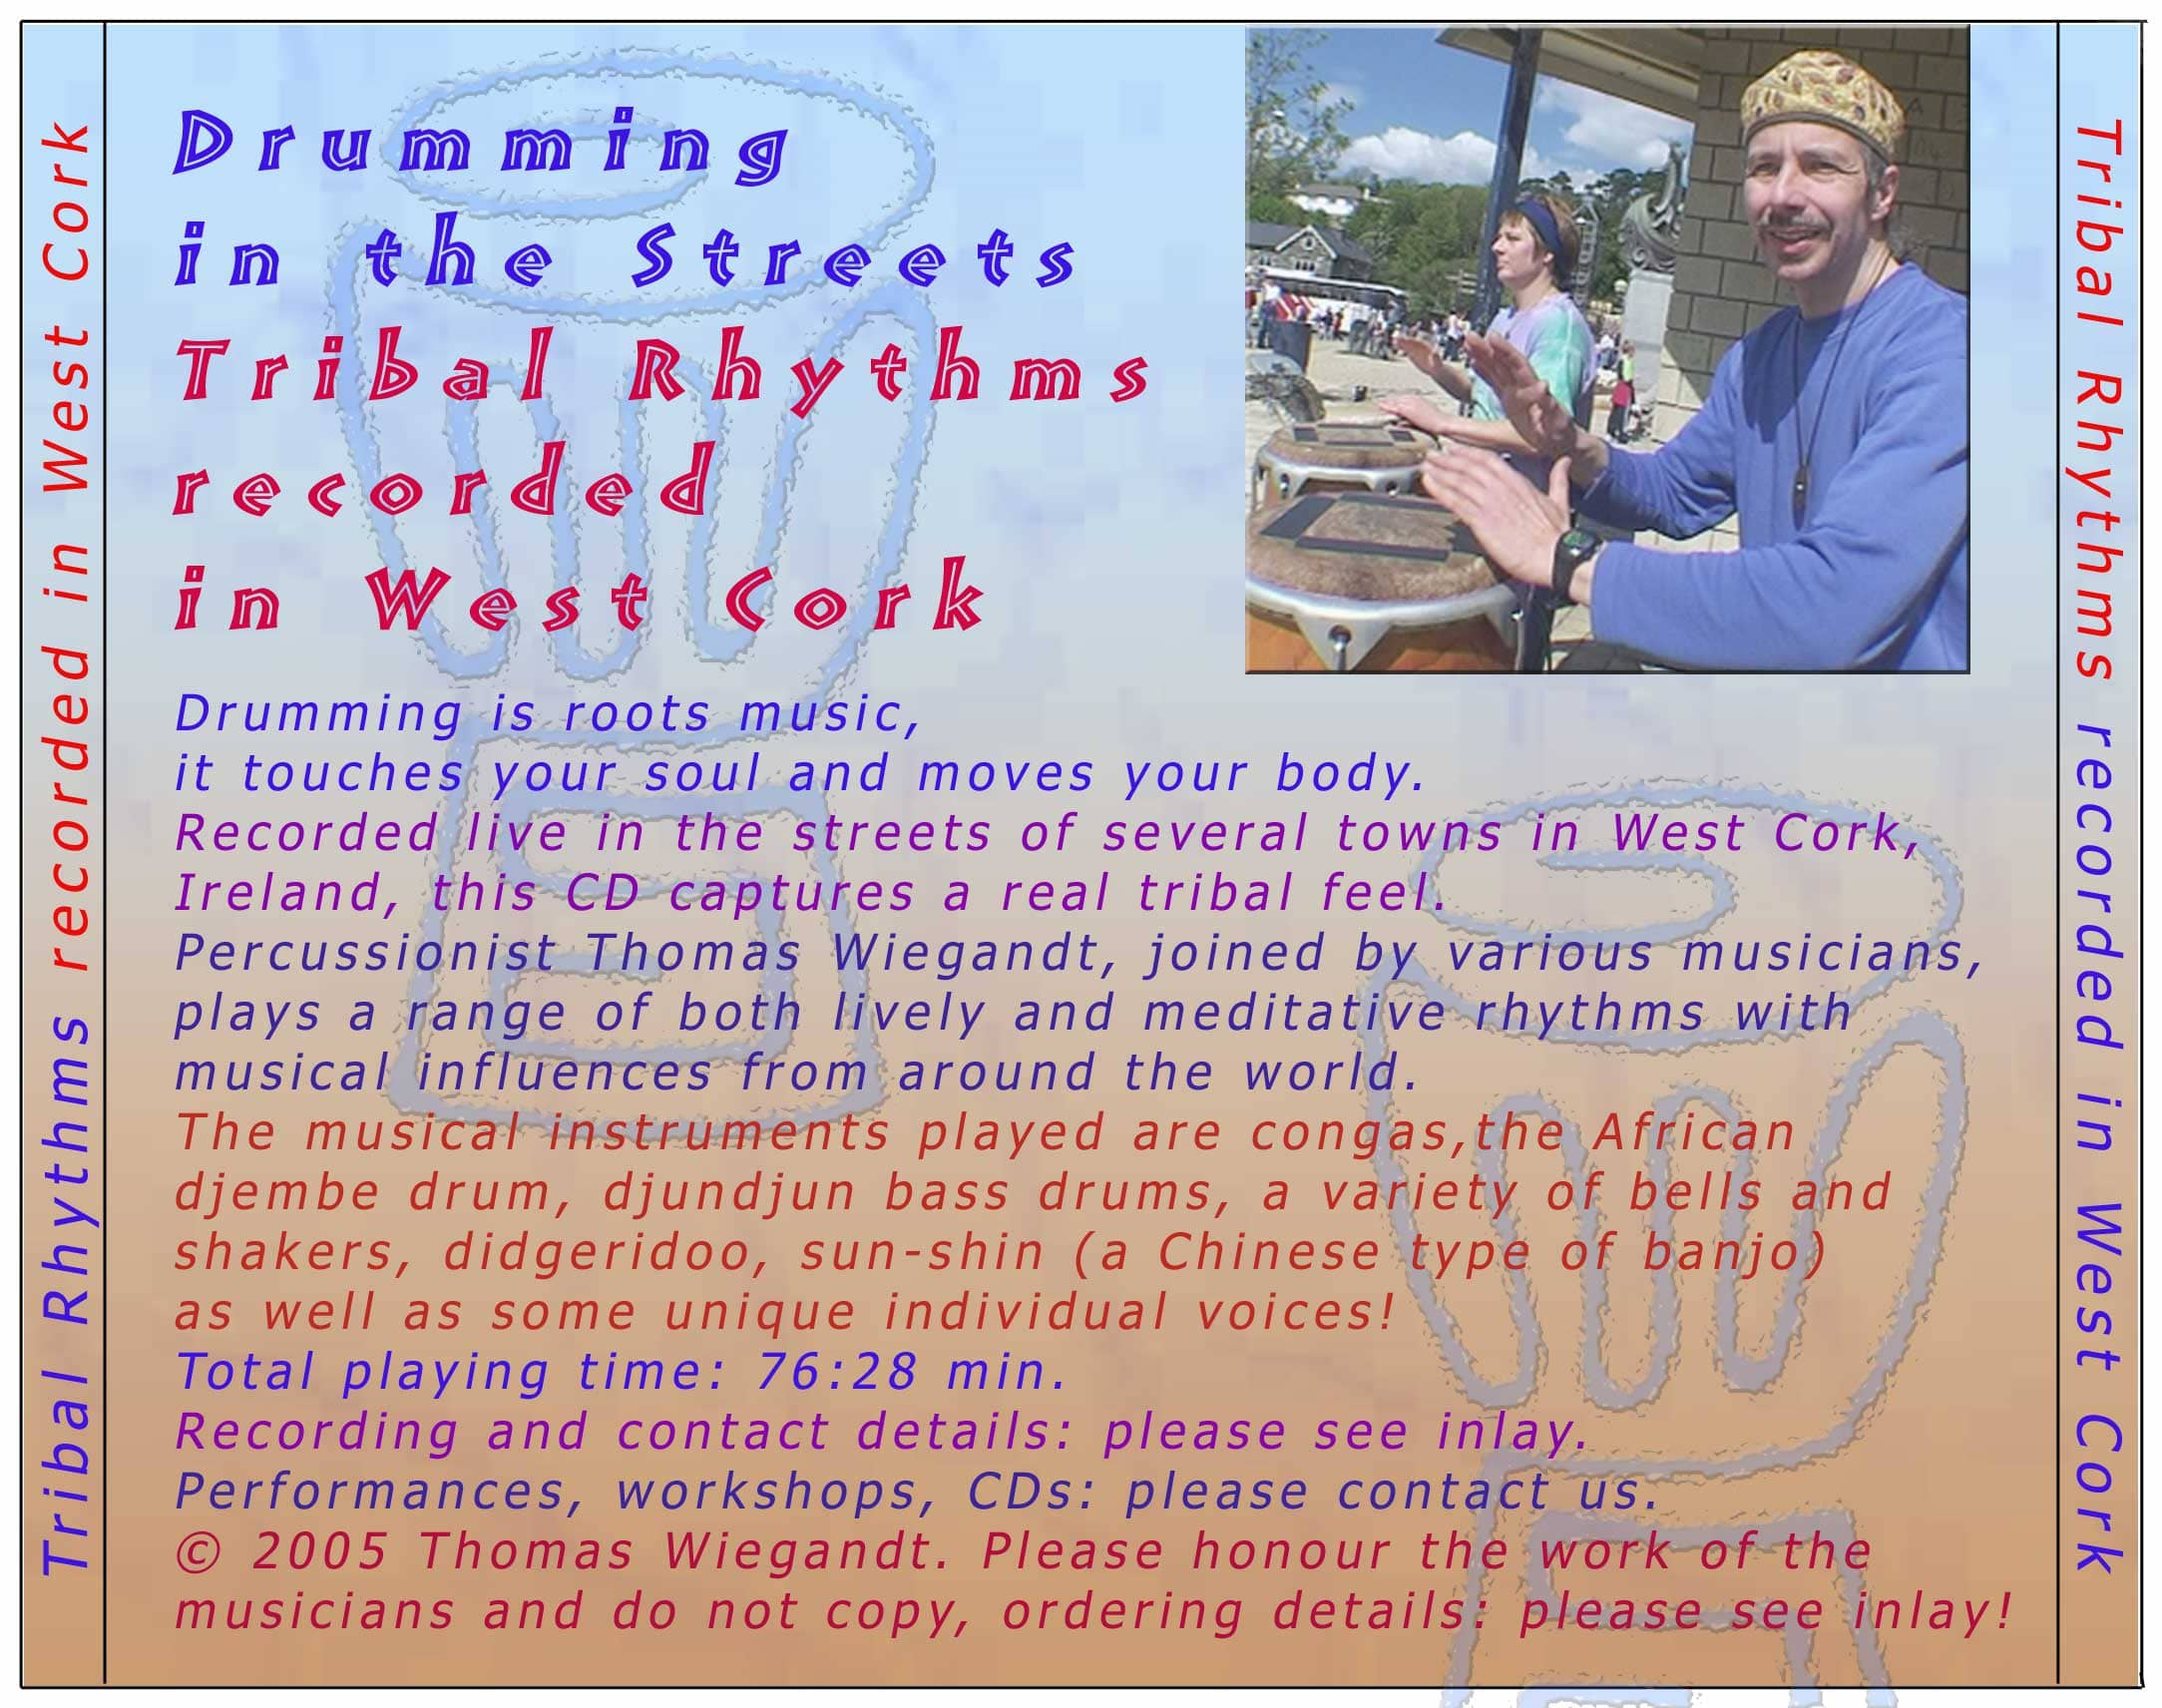 Drumming In The Streets - CD-backcover